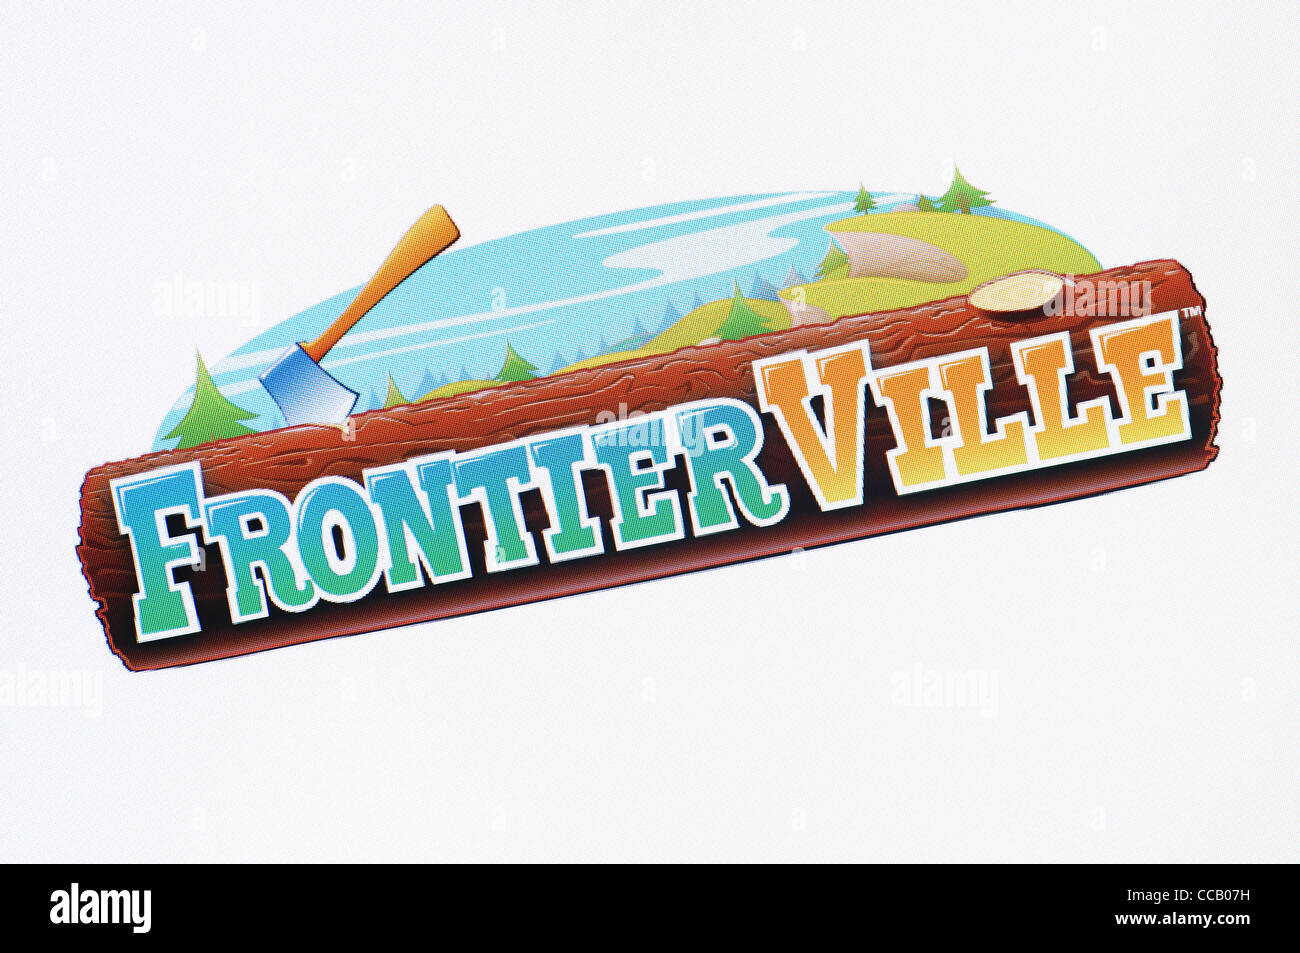 Frontierville Screenshot. The Simulation Social Network Game by Zynga. Also known as Pioneer Trail. - Stock Image